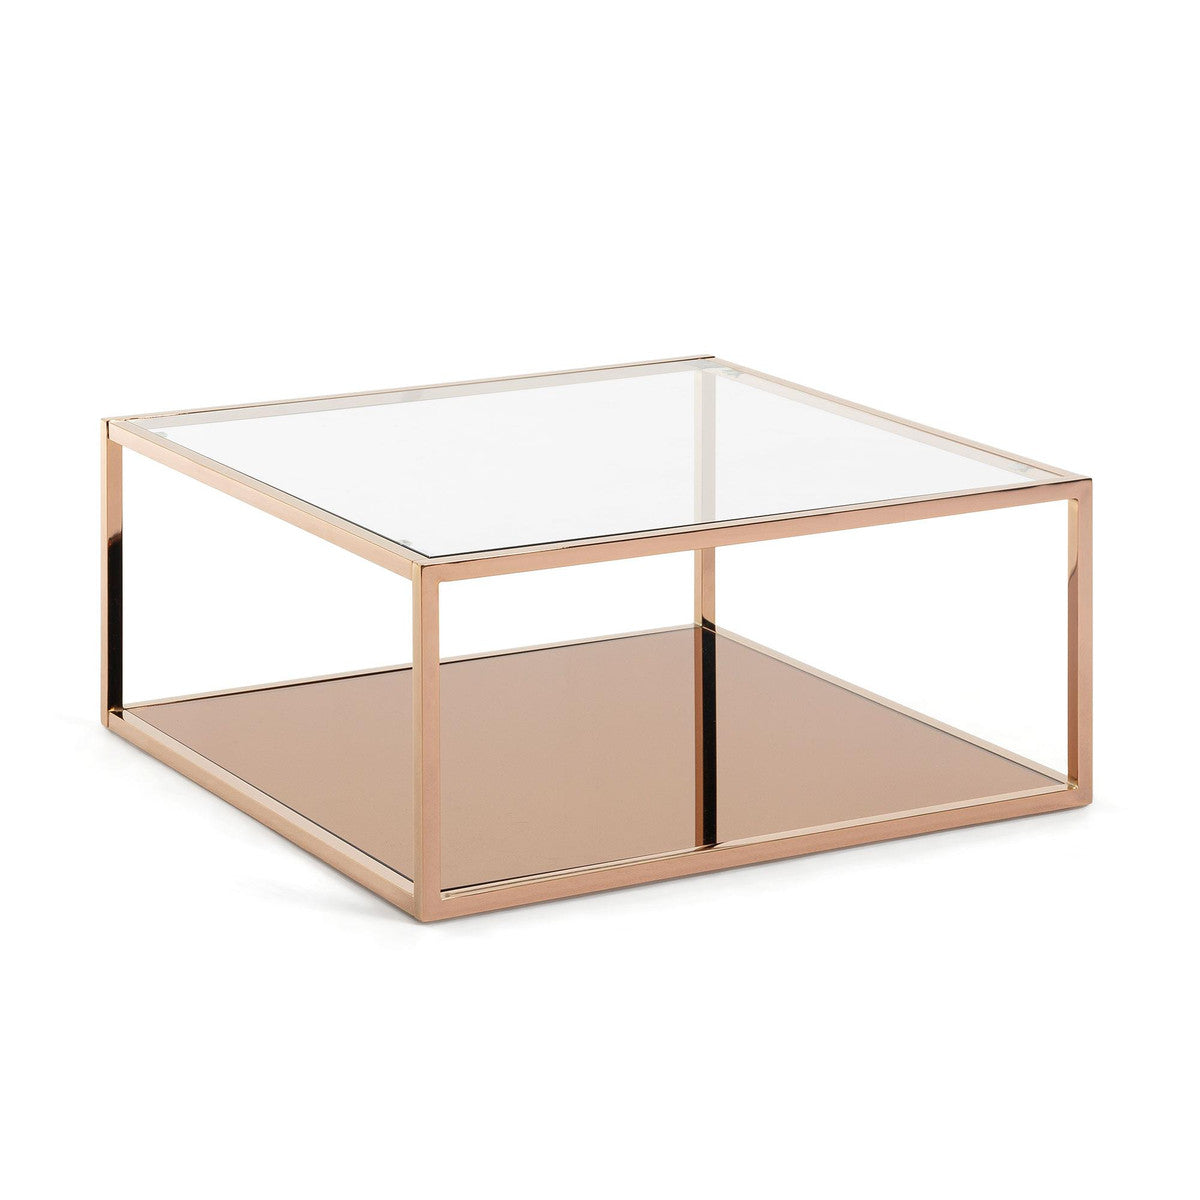 Greenhill Copper & Glass Coffee Table - Square, Coffee Table - Home-Buy Interiors